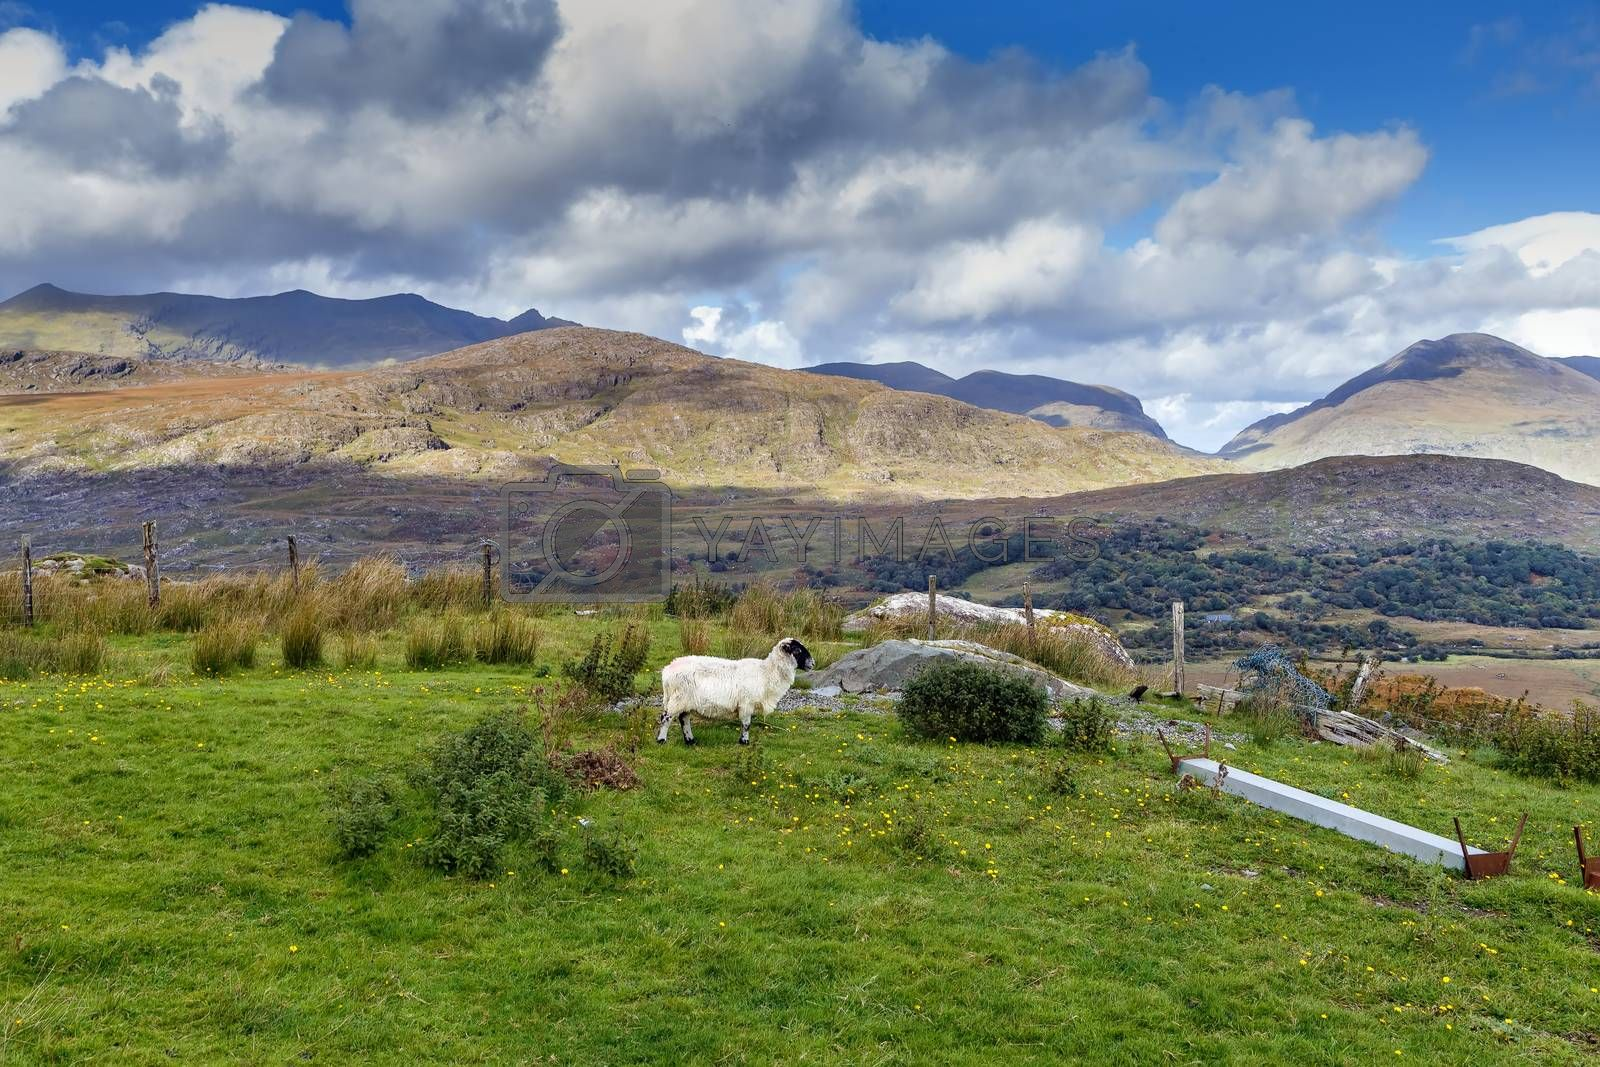 Mountain Landscape with sheep in Ring of Kerry, Ireland